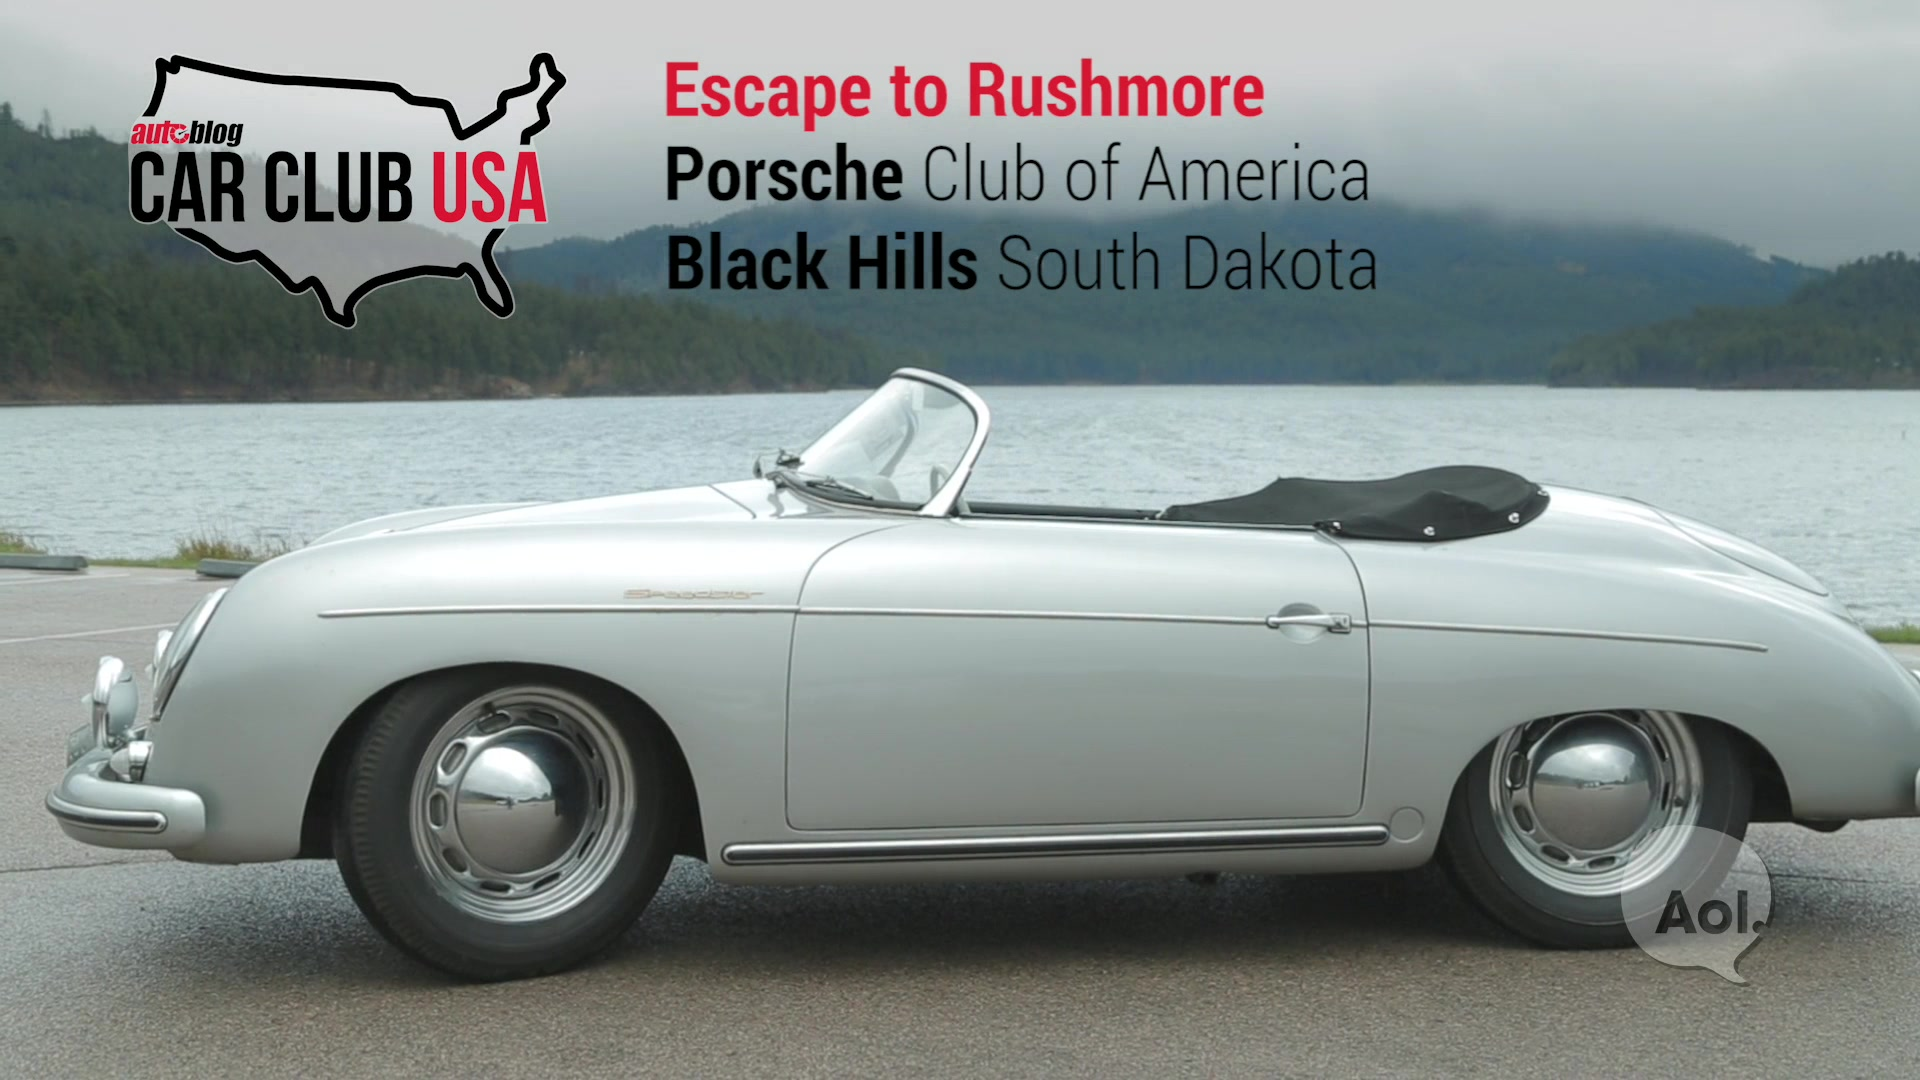 Porsche Club of America Escape To Rushmore | Keystone, SD | Car Club USA